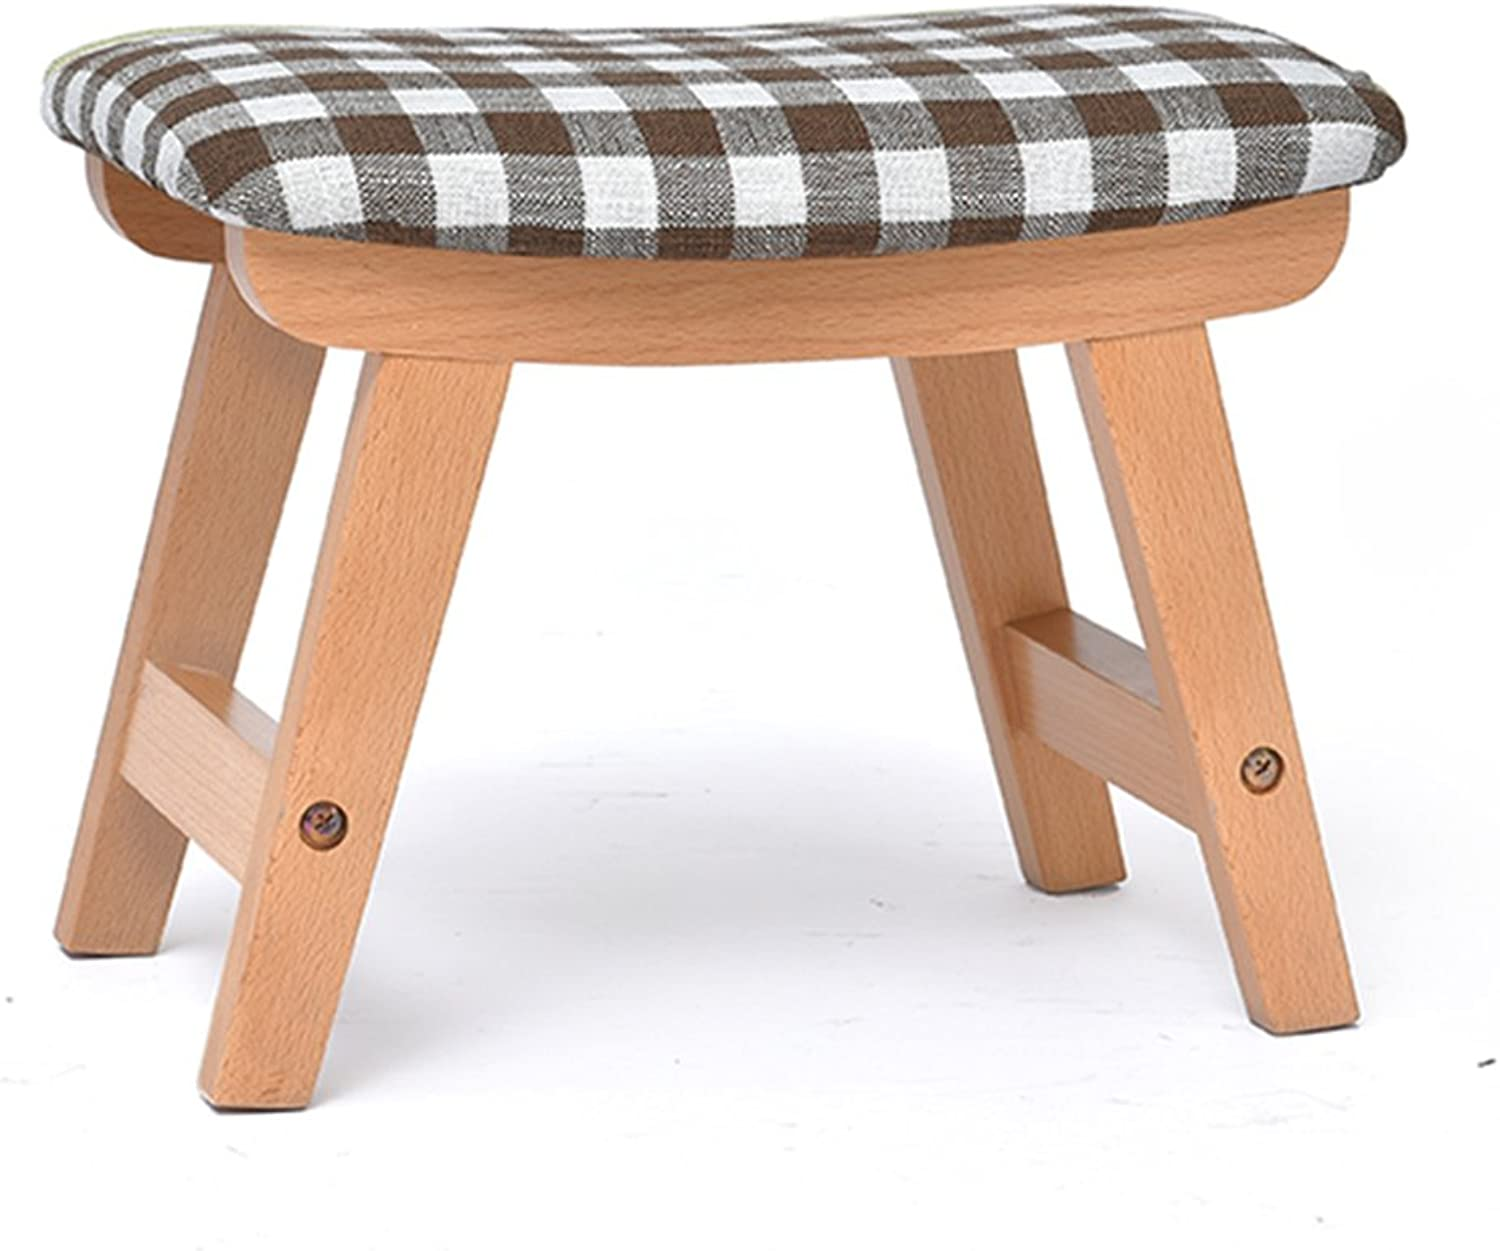 GWDJ Solid Wood Creative Footstool Living Room Sofa Coffee Table Stool Household Bench Doorway Cloth Change shoes Stool (8 colors Optional) Reinforced Footrest (color   B)